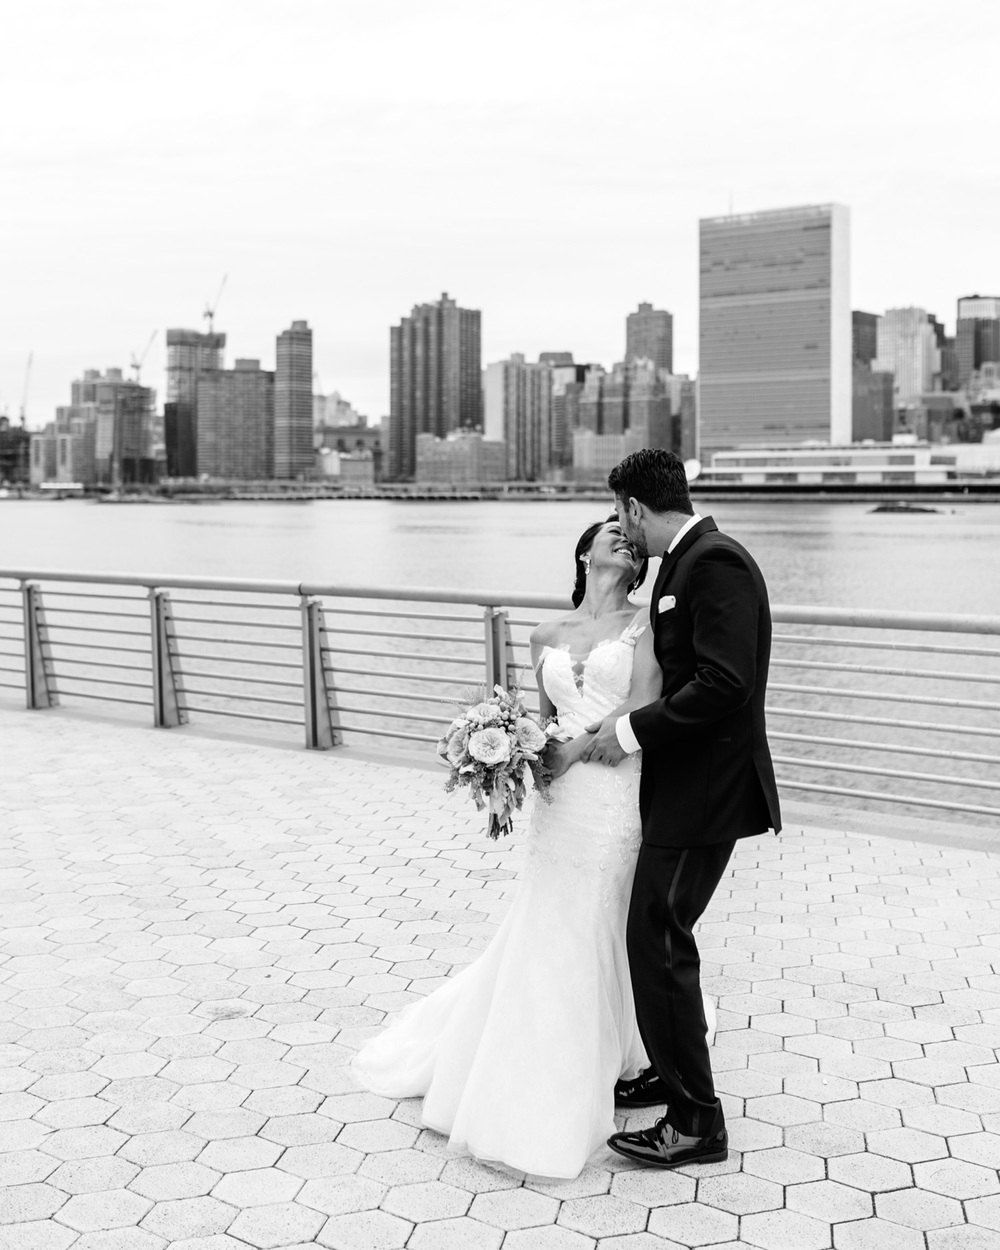 Metropolitan Building Wedding Queens, NY - Jessica & Tony x The Gathering Season 035.jpg